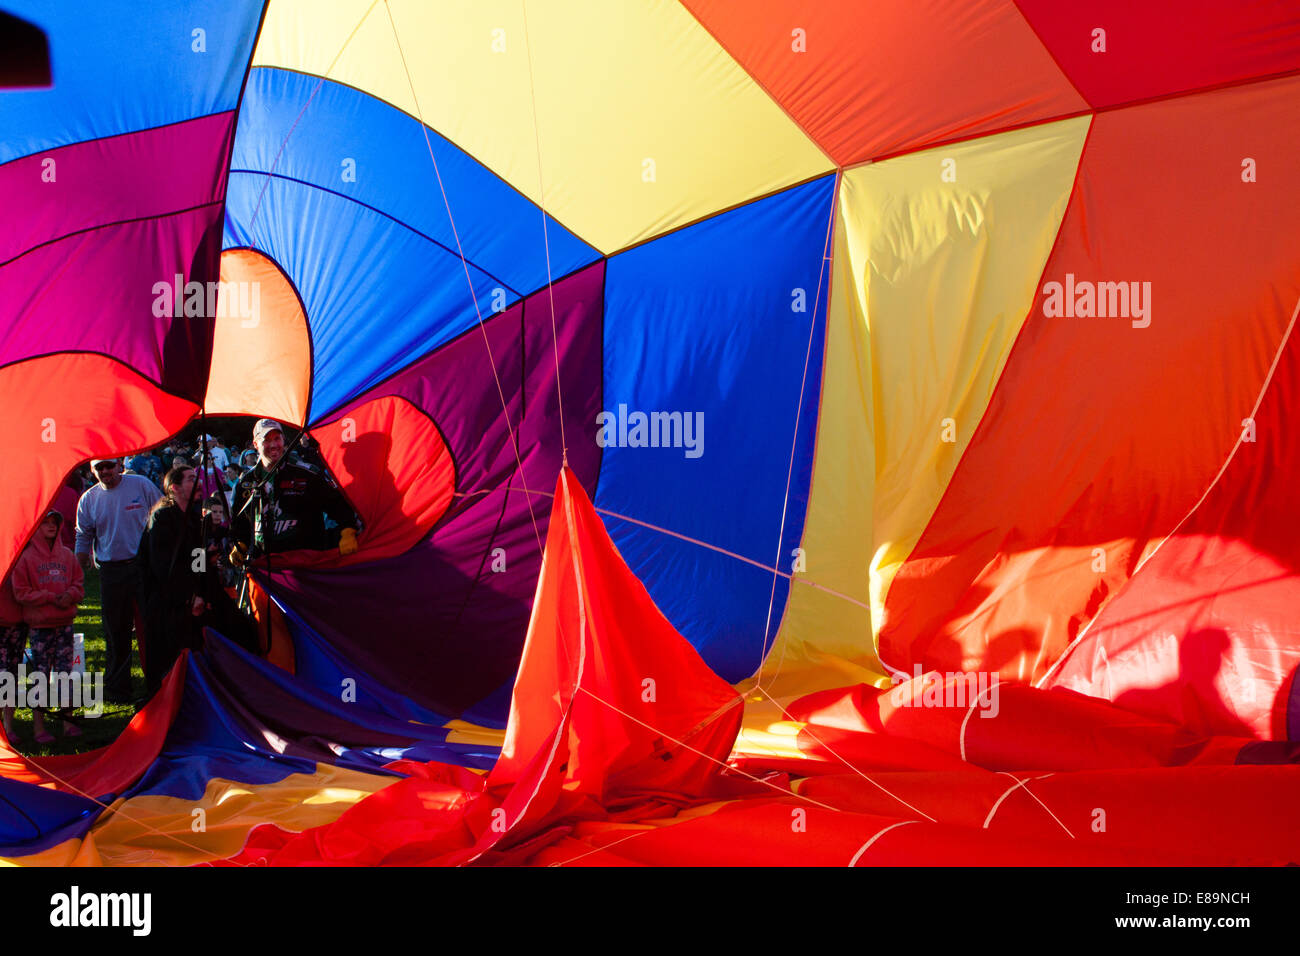 View from inside a partially inflated balloon canopy being collapsed for storage - Stock Image